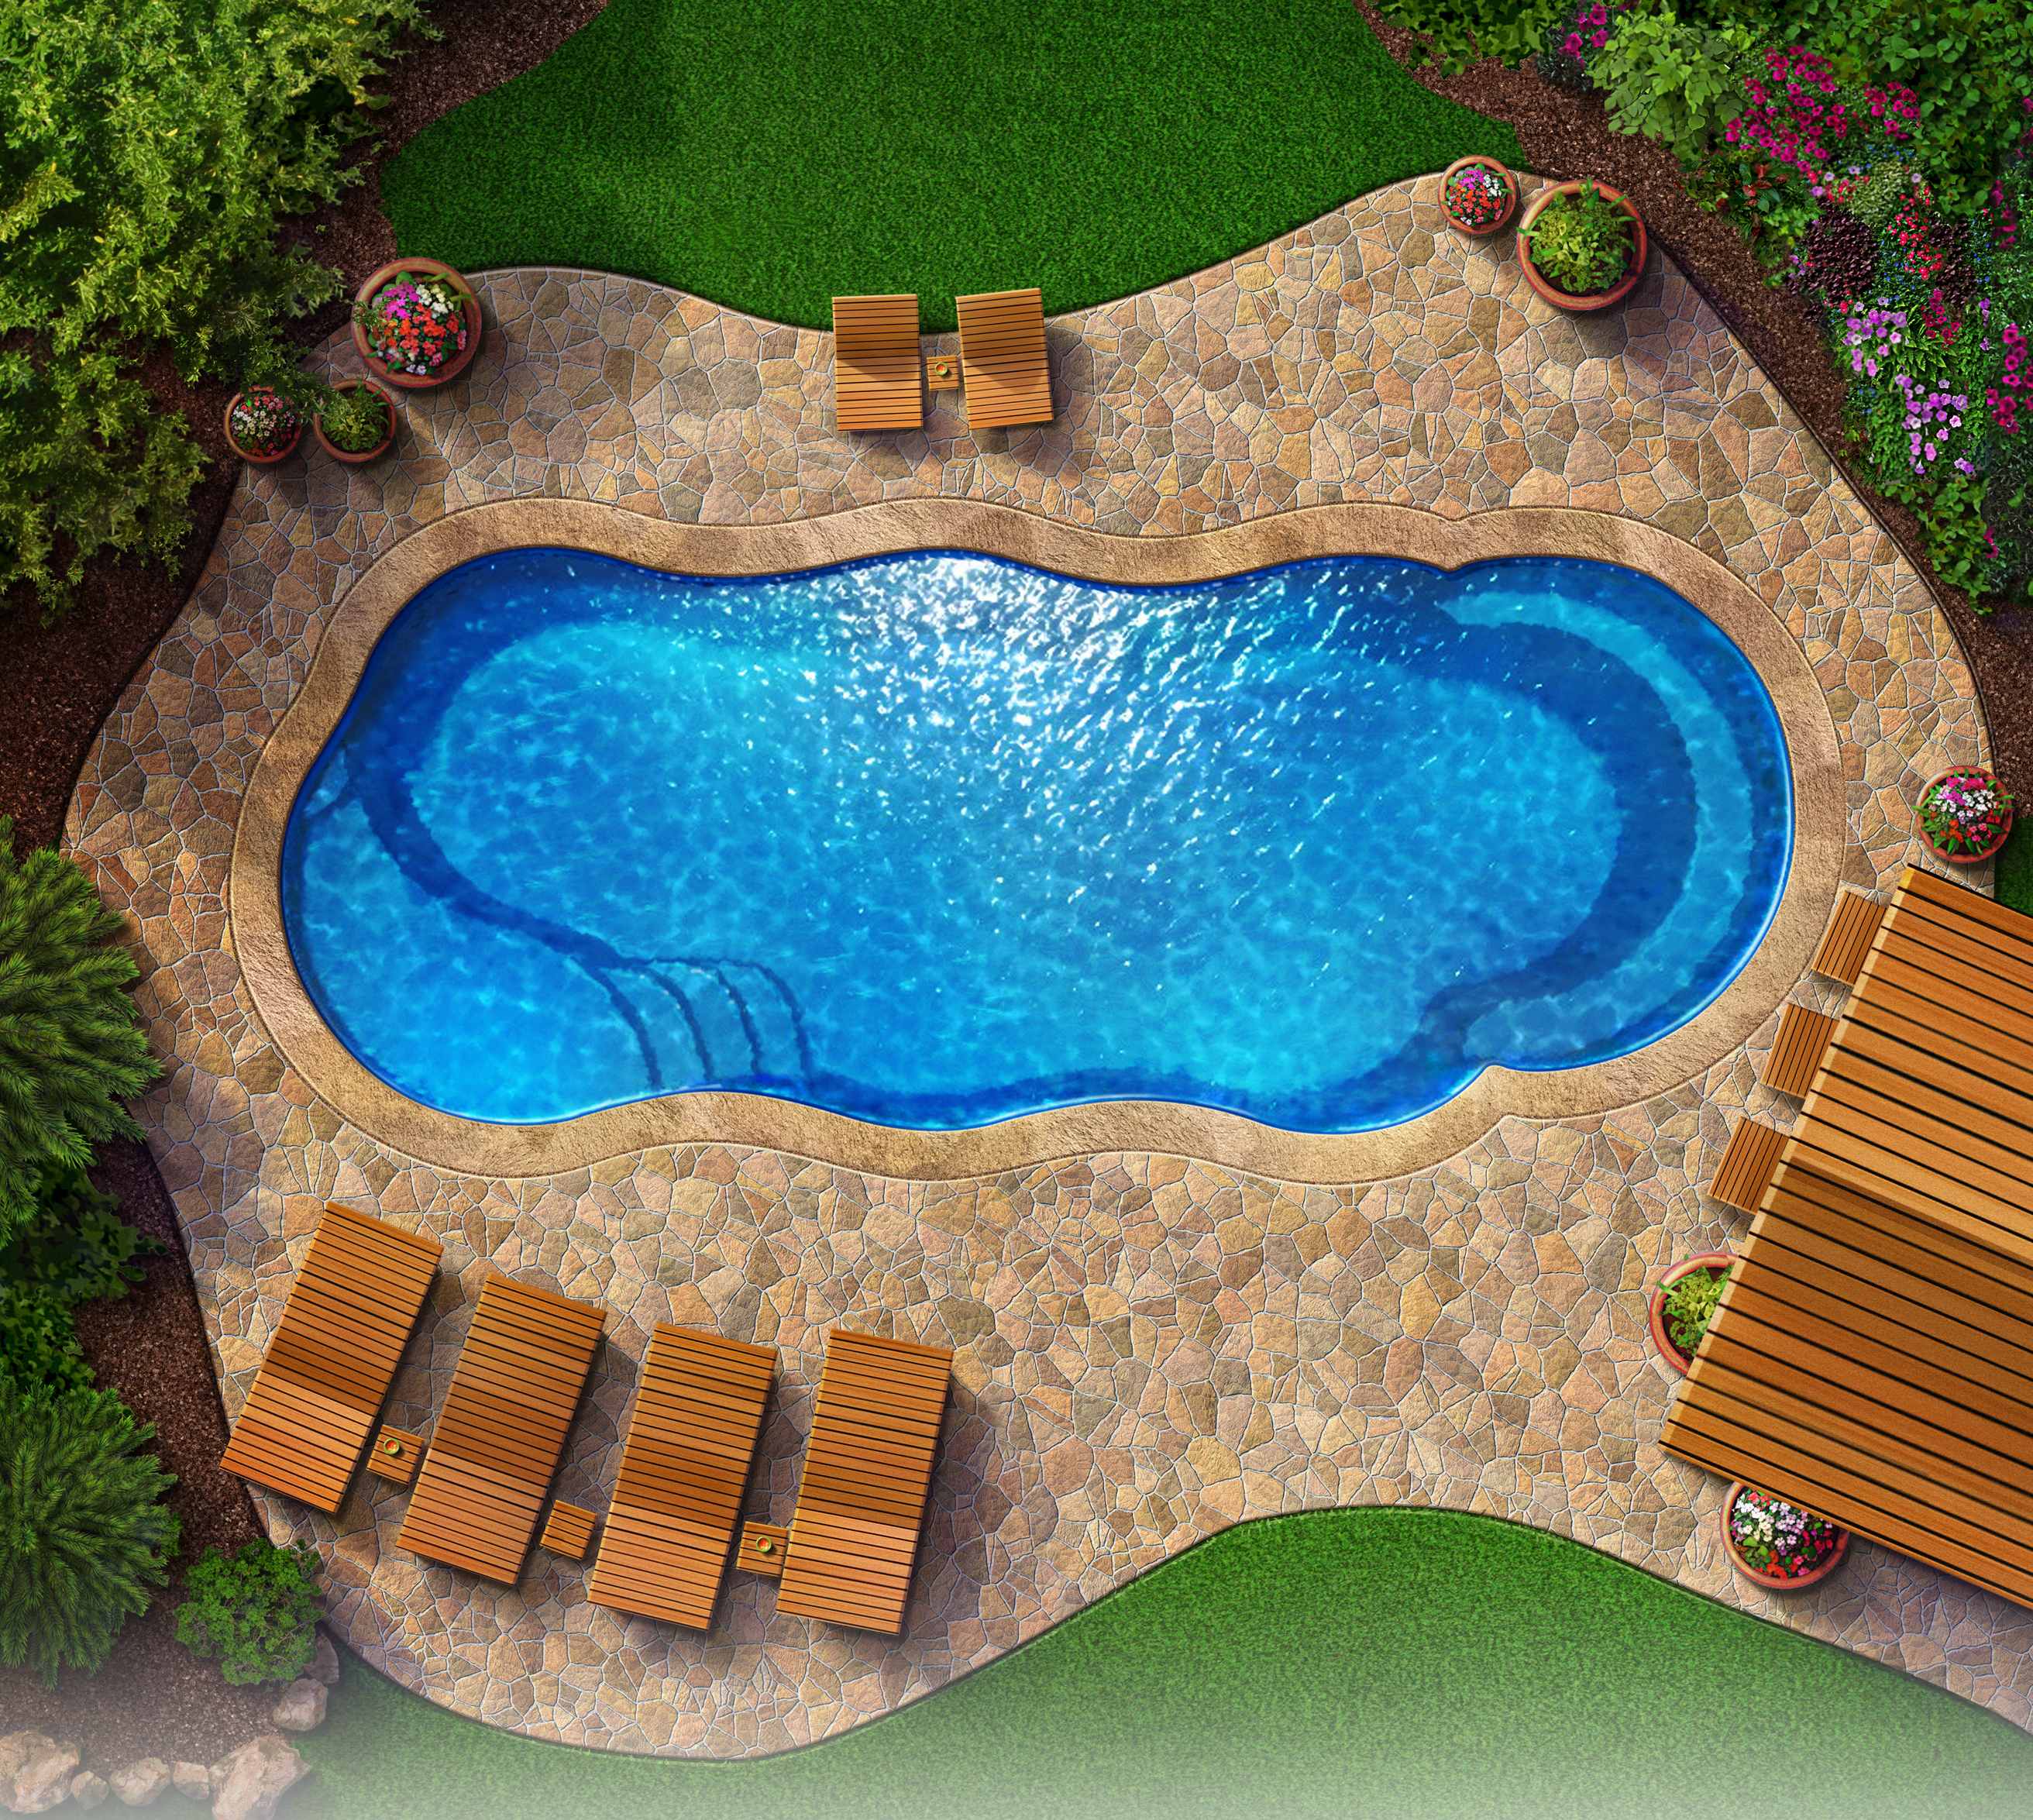 Crescent cove fiberglass pool kits gardening outdoors crescent cove fiberglass pool kits solutioingenieria Image collections